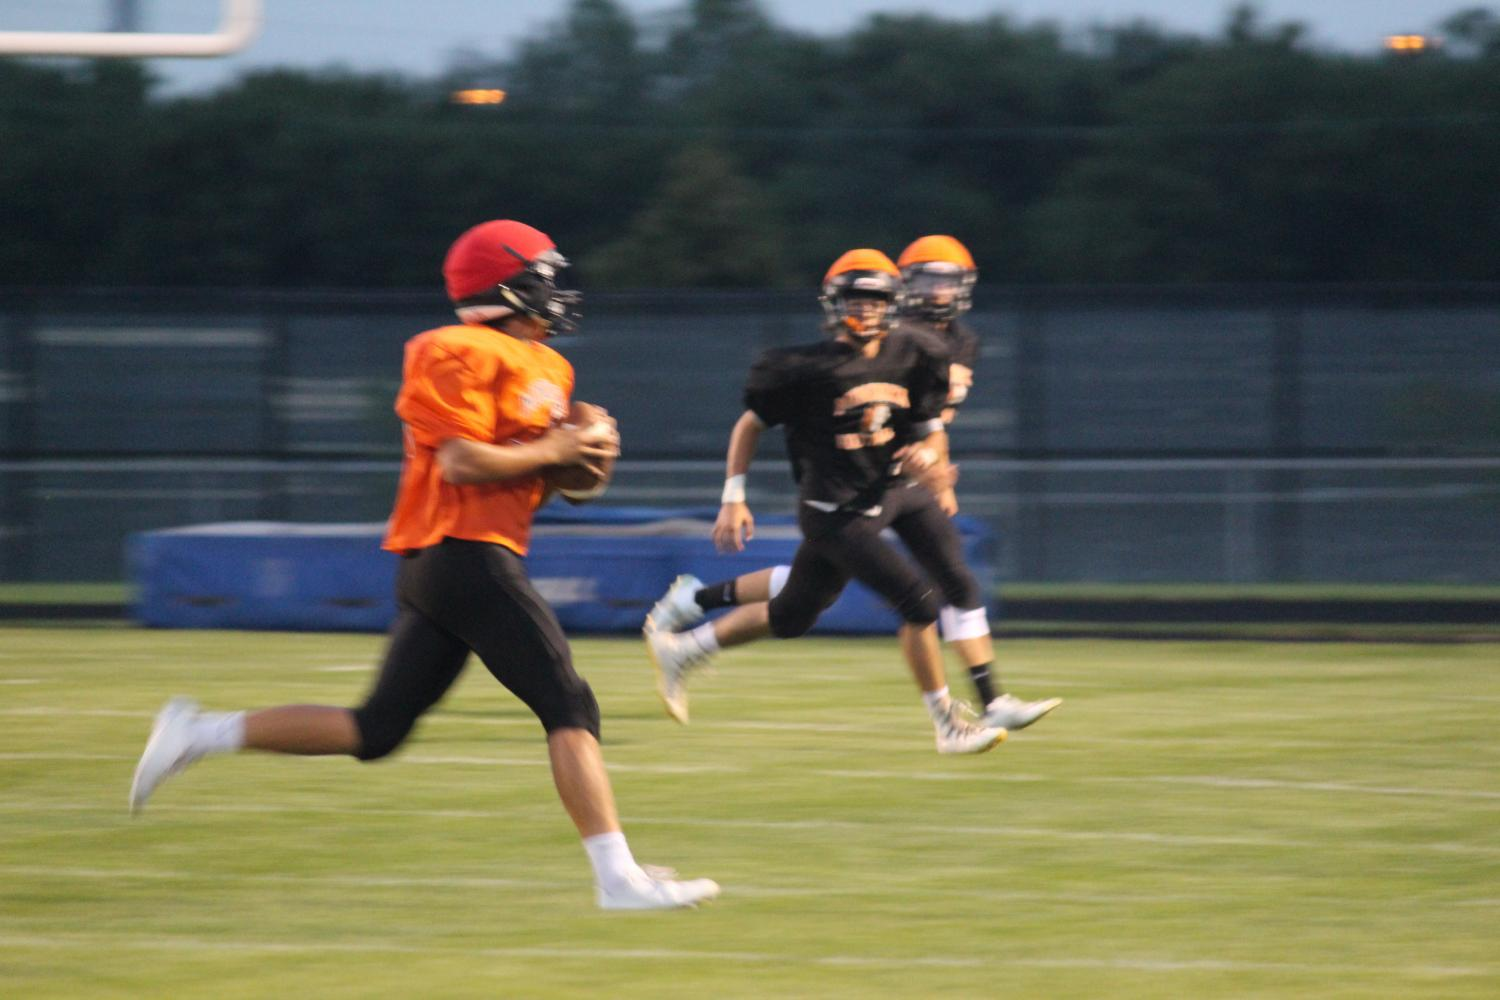 Senior+quarterback+Zach+Gessner+looks+to+pass+at+the+Meet+the+Indians+scrimmage+on+Aug.+18.+